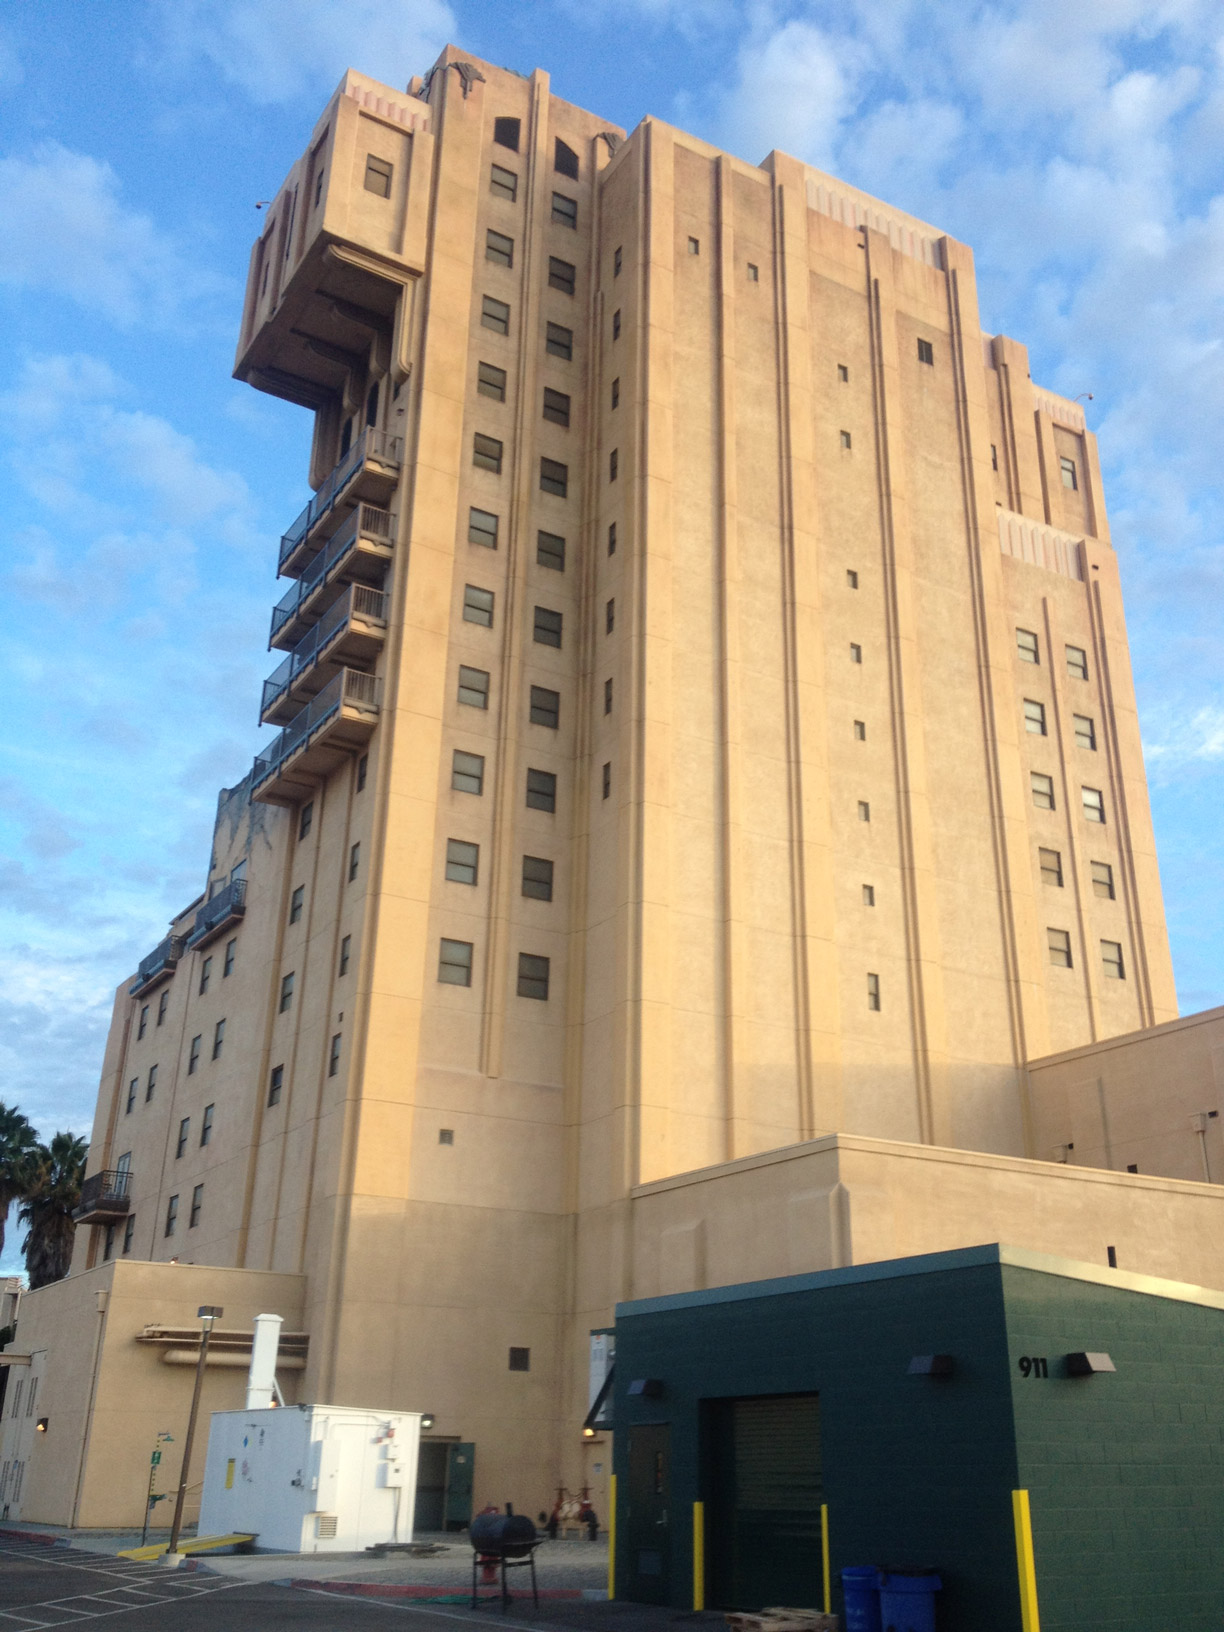 DCA Tower of Terror backstage area